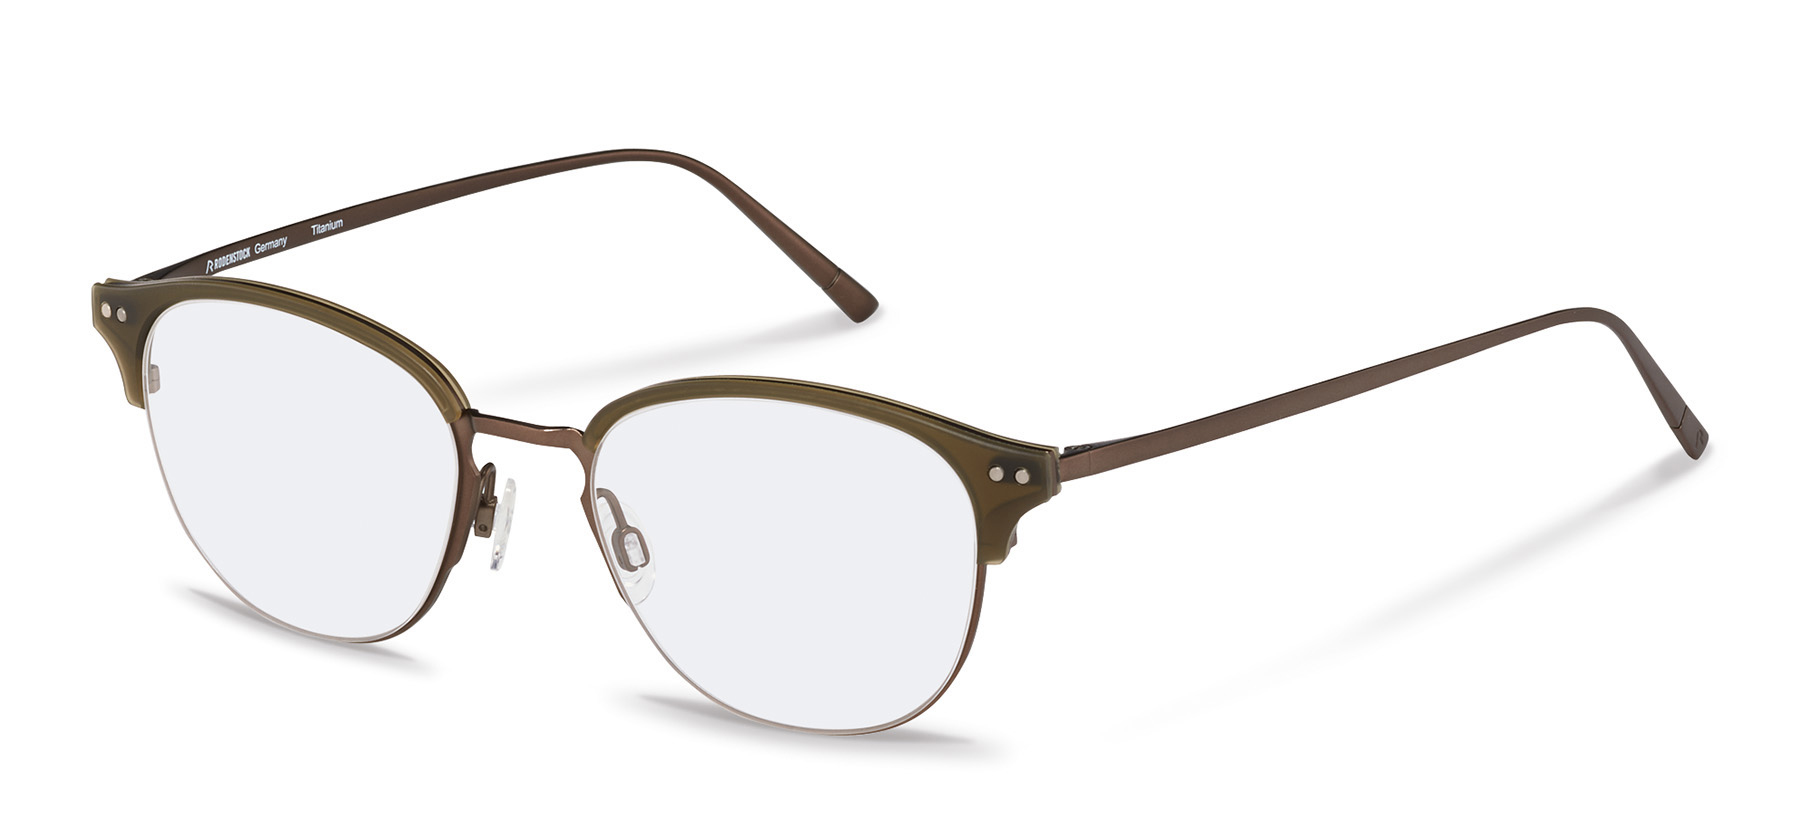 Rodenstock-Correction frame-R7083-brown/olive